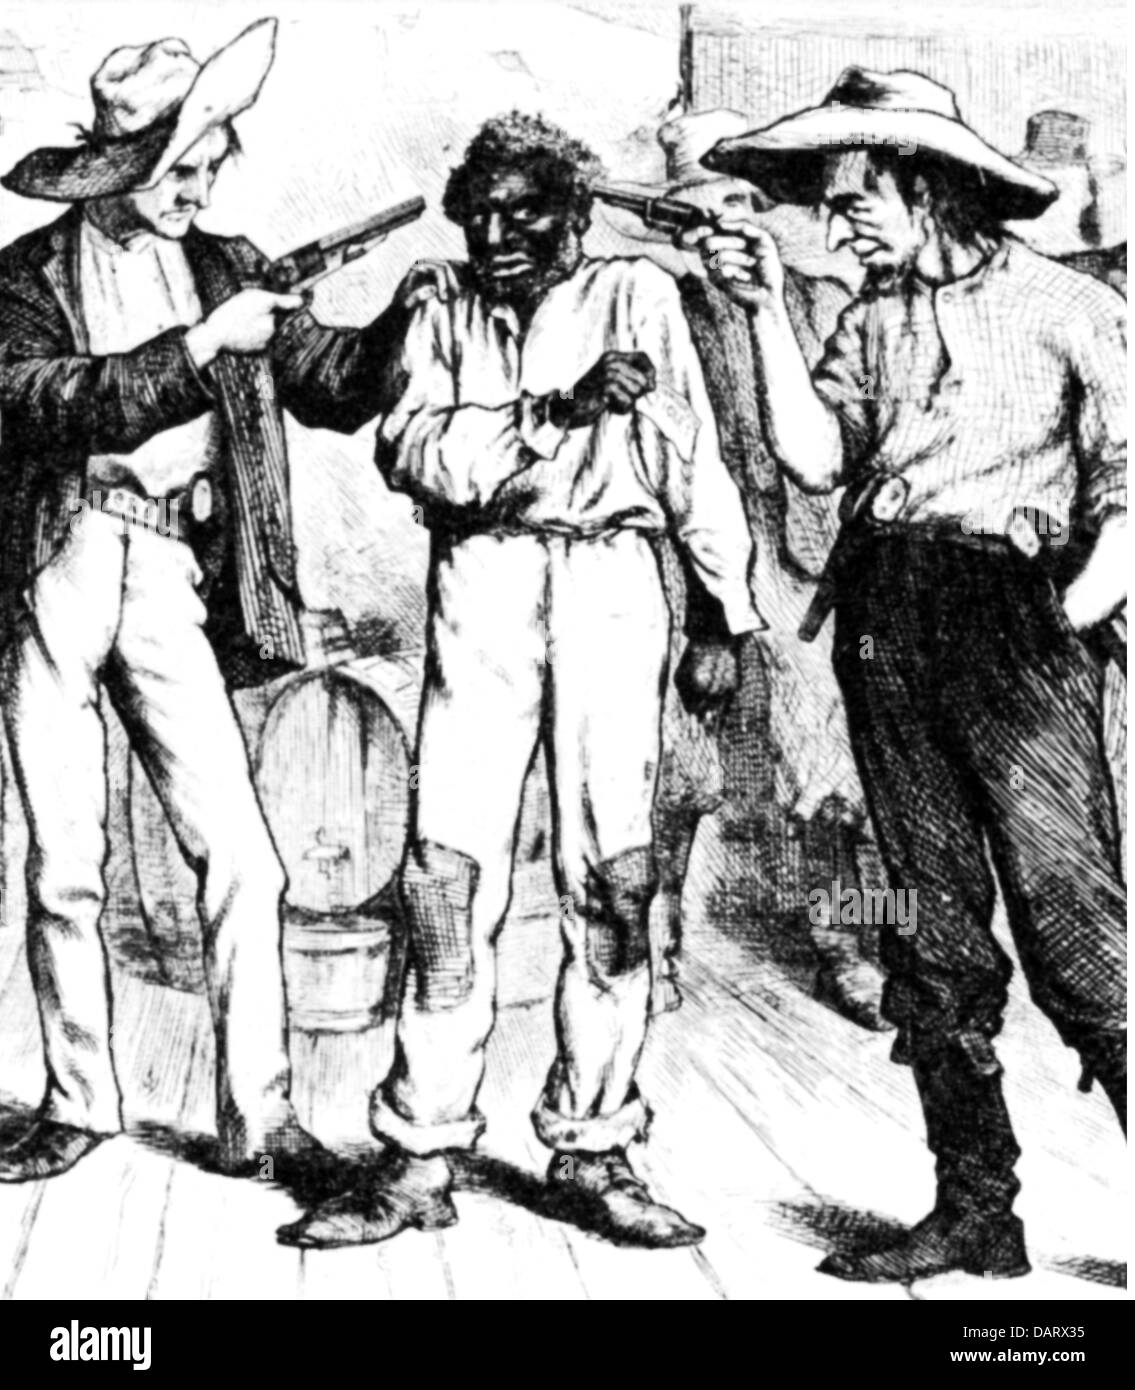 Reconstruction of the USA 1863 - 1877, caricature, southern democrats threaten a freed coloured slave, 'You're - Stock Image